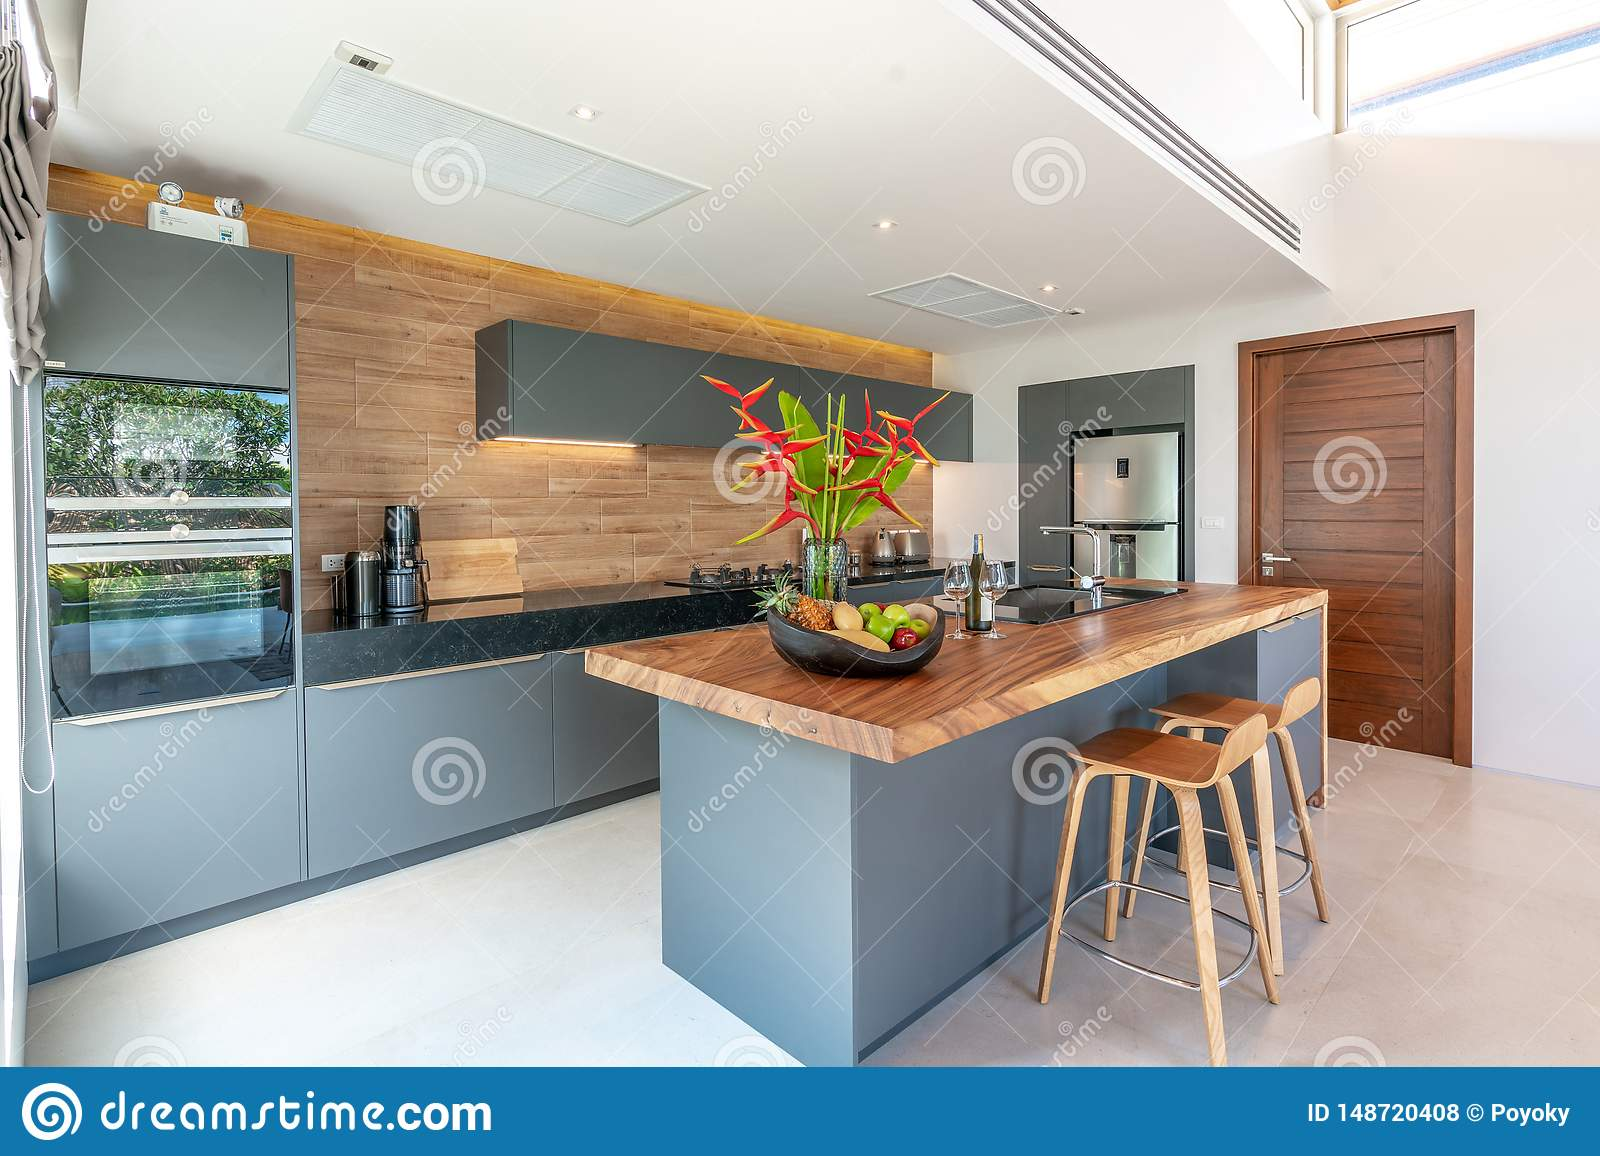 Interior Design In Living Room And Open Kitchen Area With Dining Table Stock Photo Image Of Decoration Kitchen 148720408